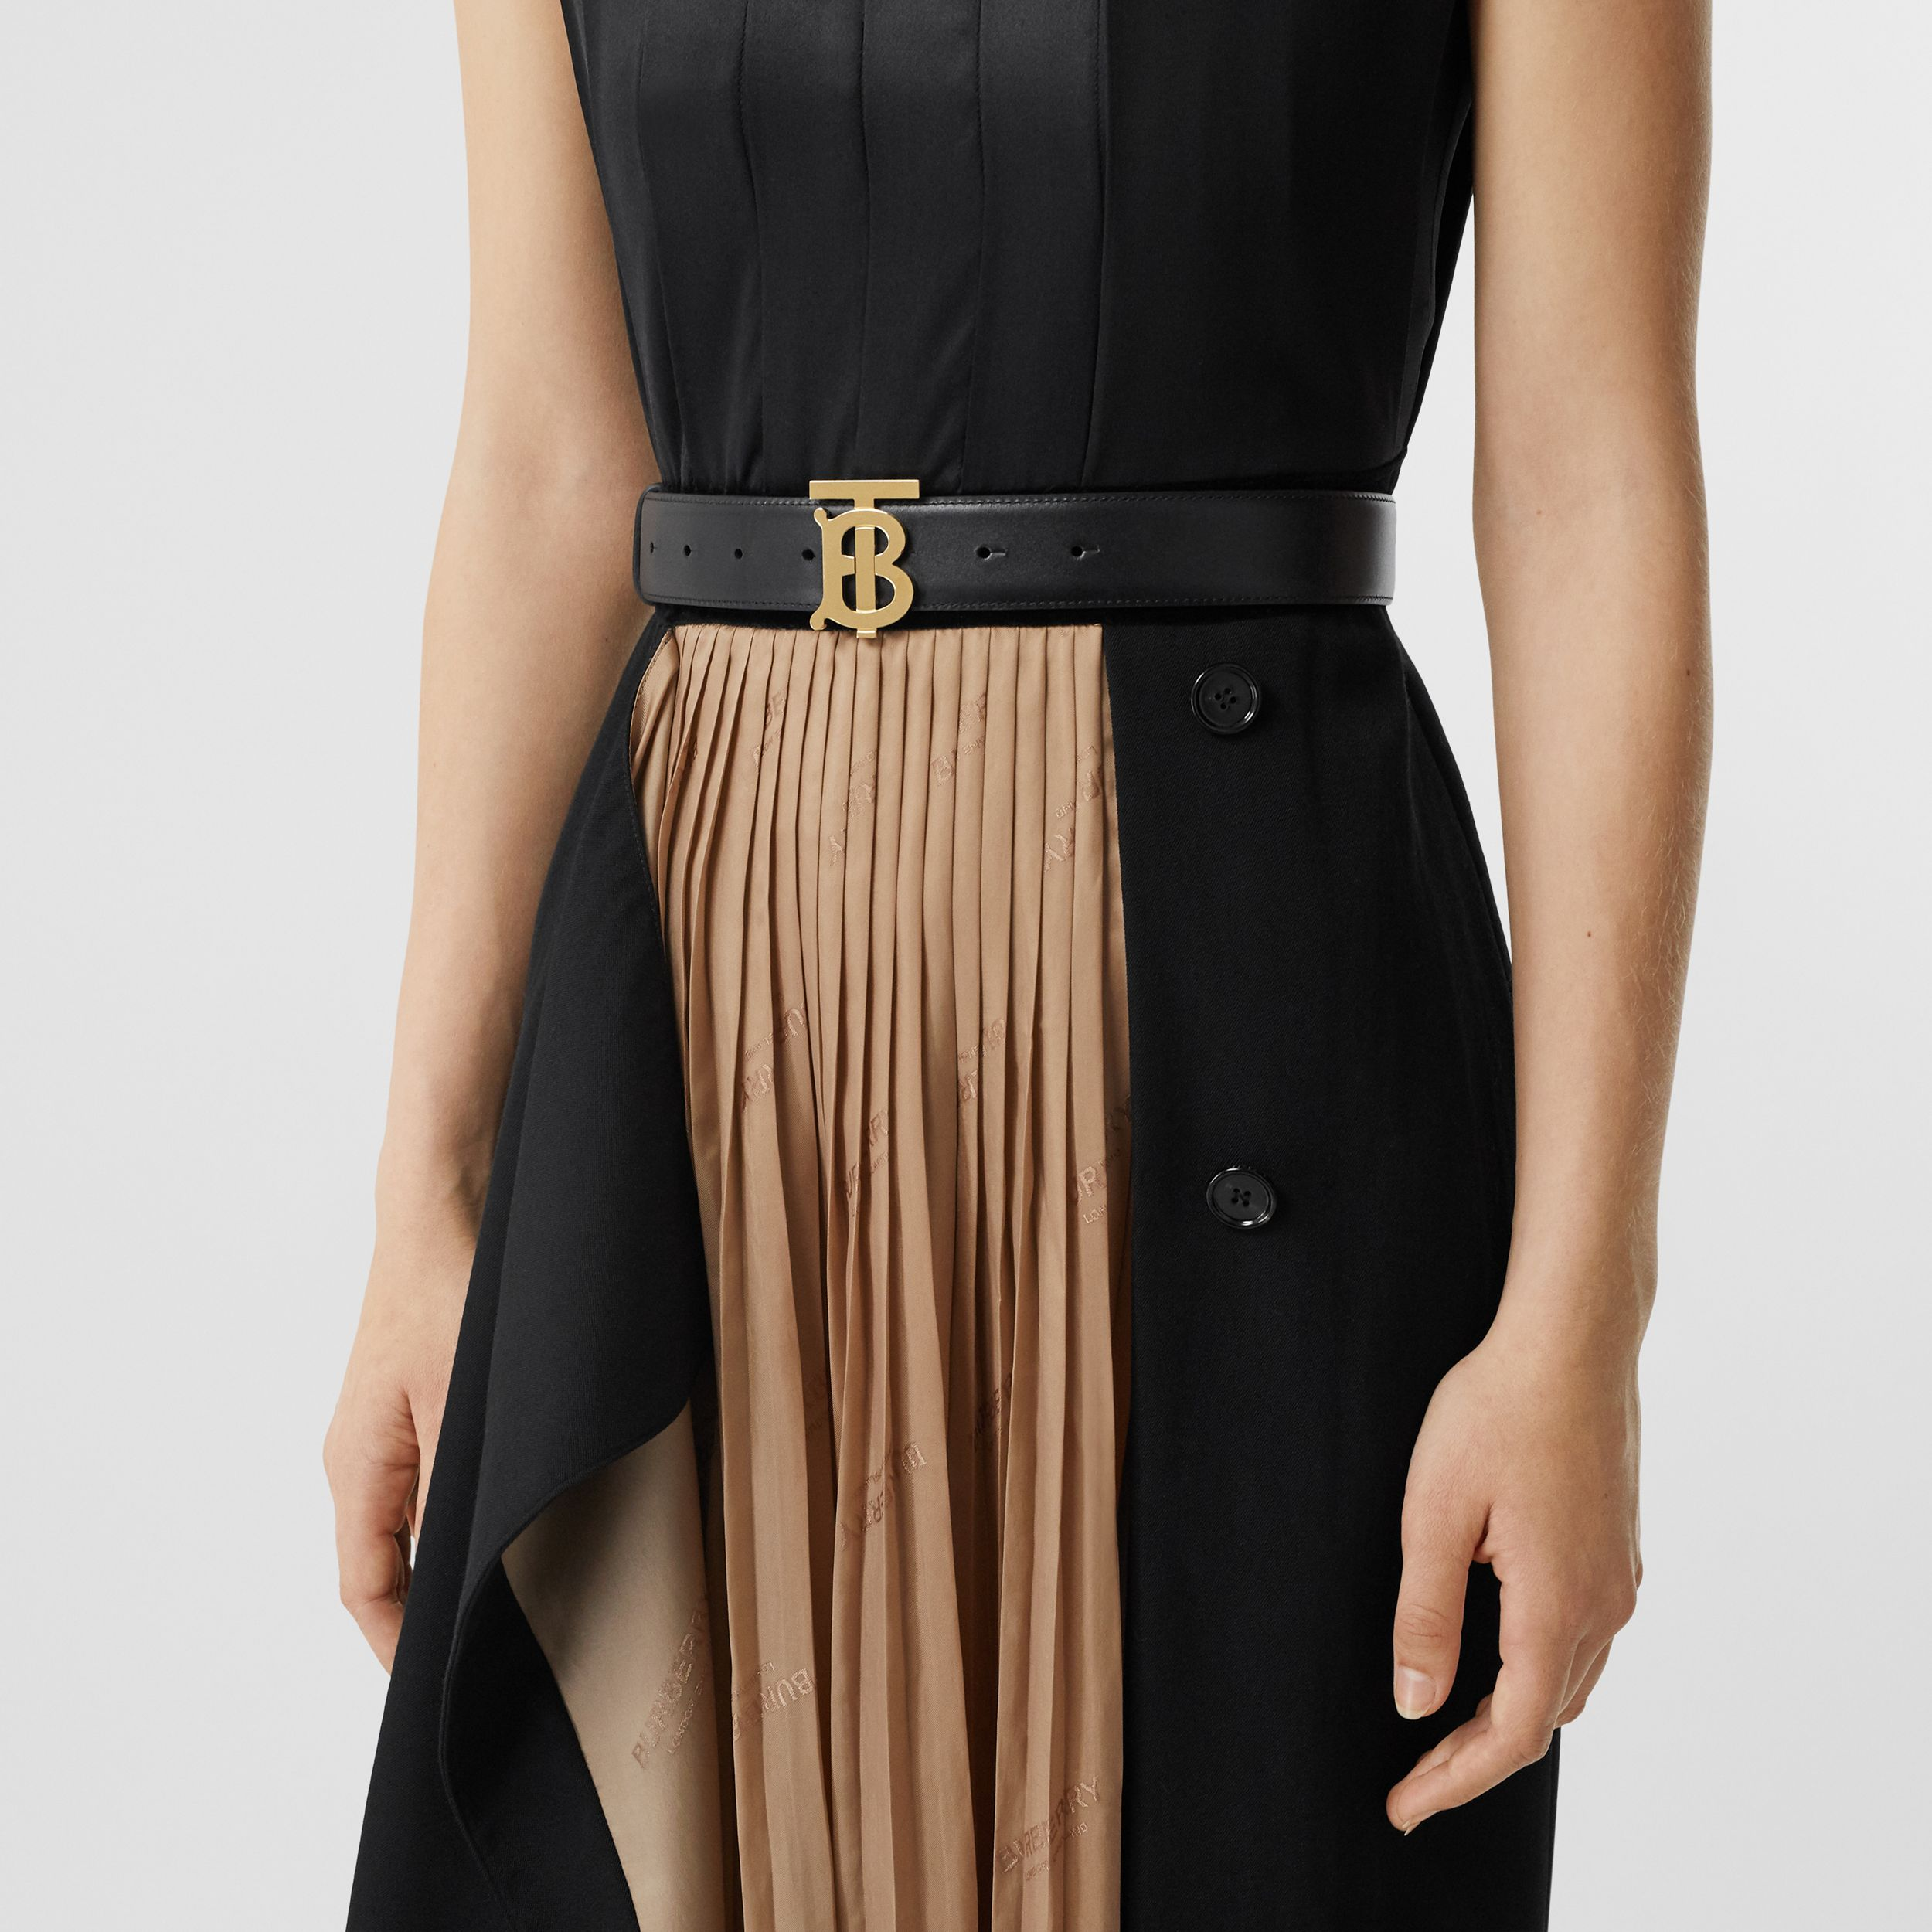 Monogram Motif Leather Belt in Black - Women | Burberry Singapore - 3